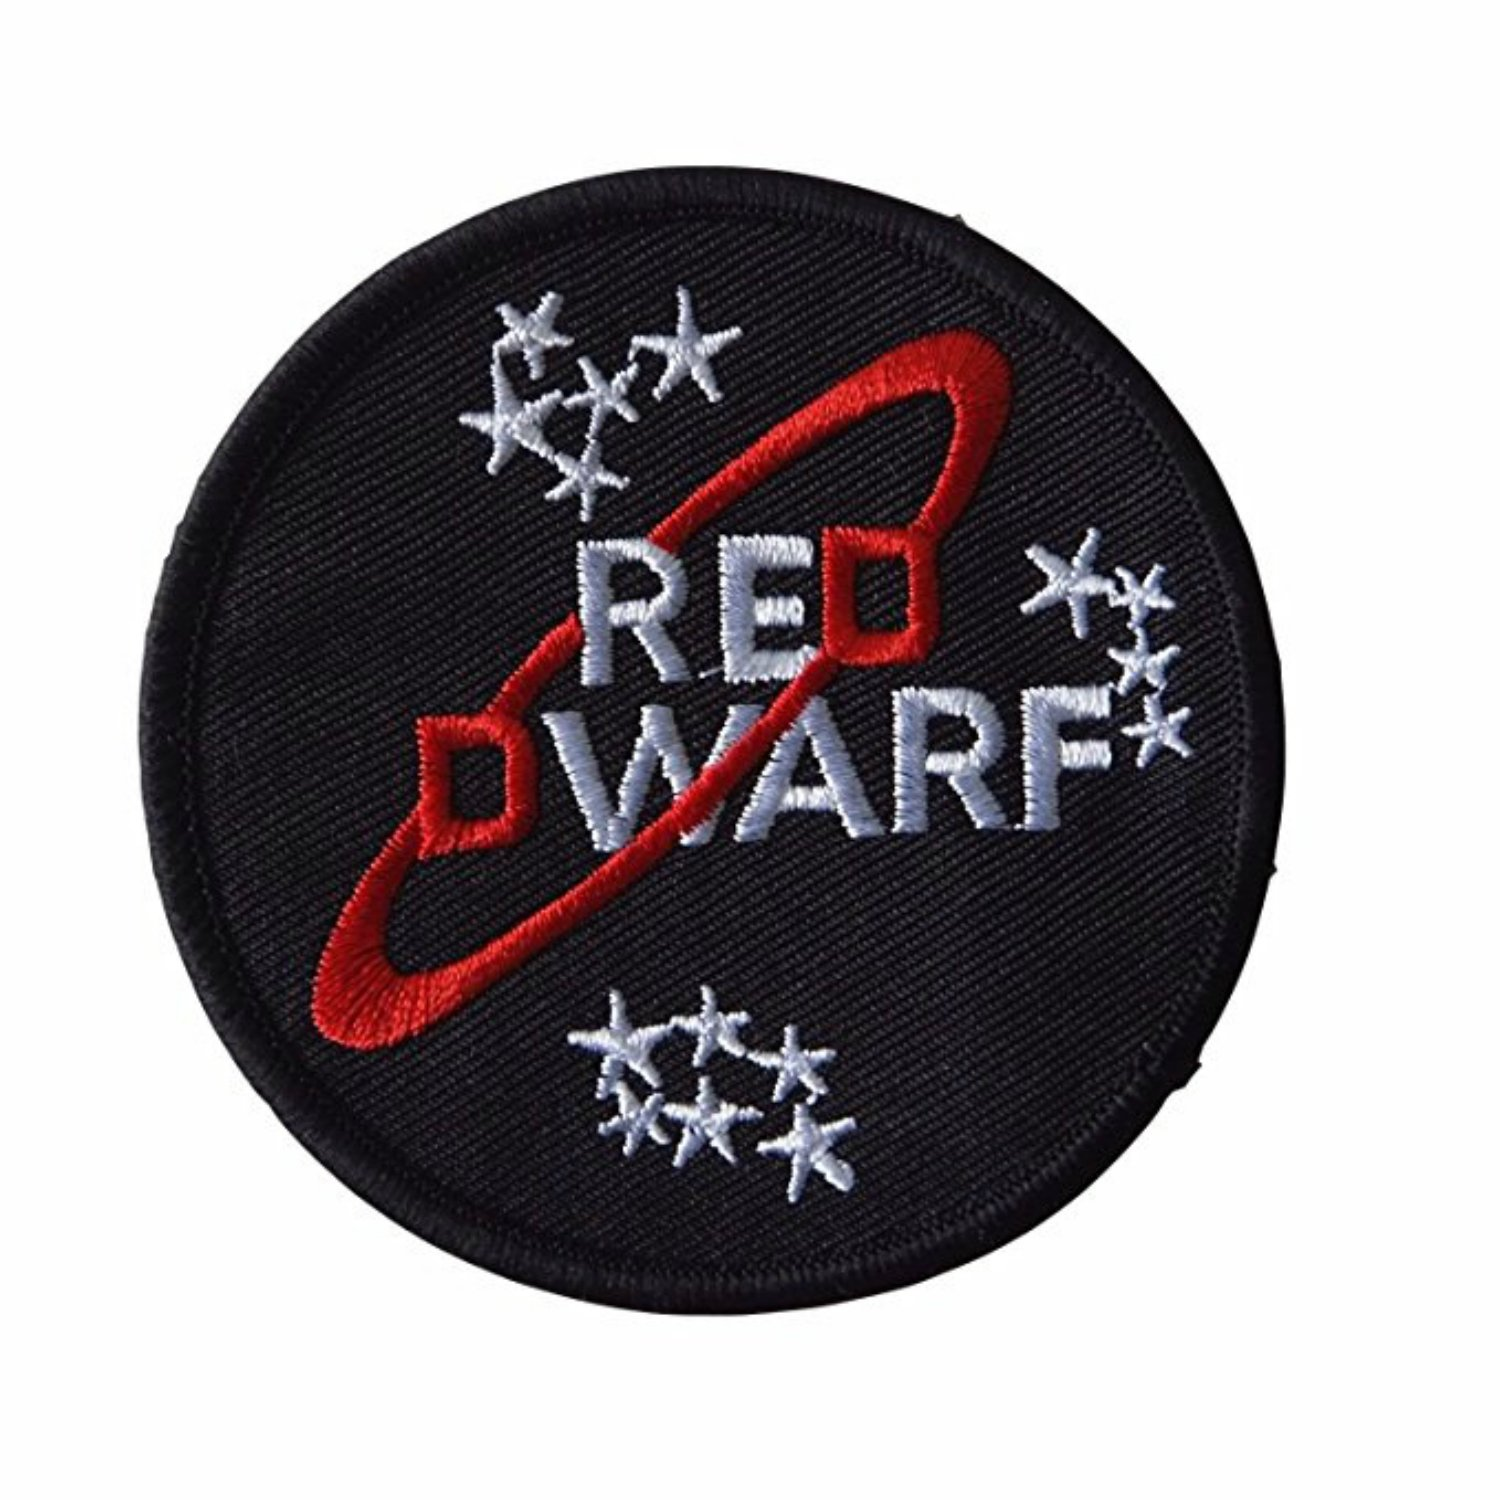 Amazon.com: Red Dwarf Logo Embroidered Patch: Clothing.